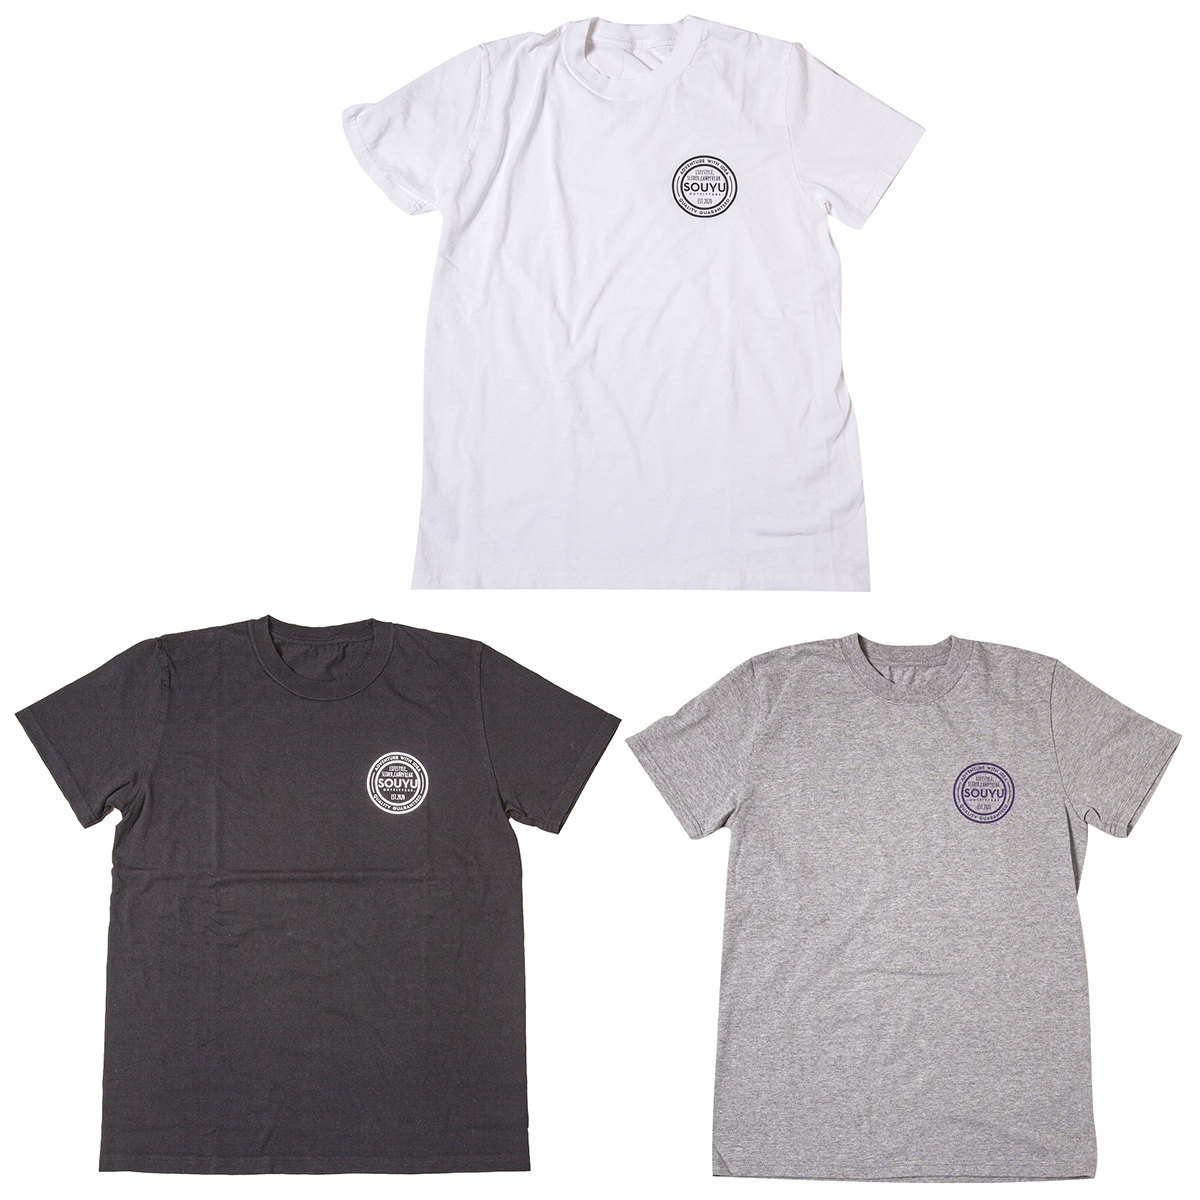 STD LOGO TEE スタンダードロゴ T シャツ Number : s20-so-10C Fabric : Cotton 100% Size : XS, S, M, L, XL Color:White, Black, Gray Heather Price : ¥4,800